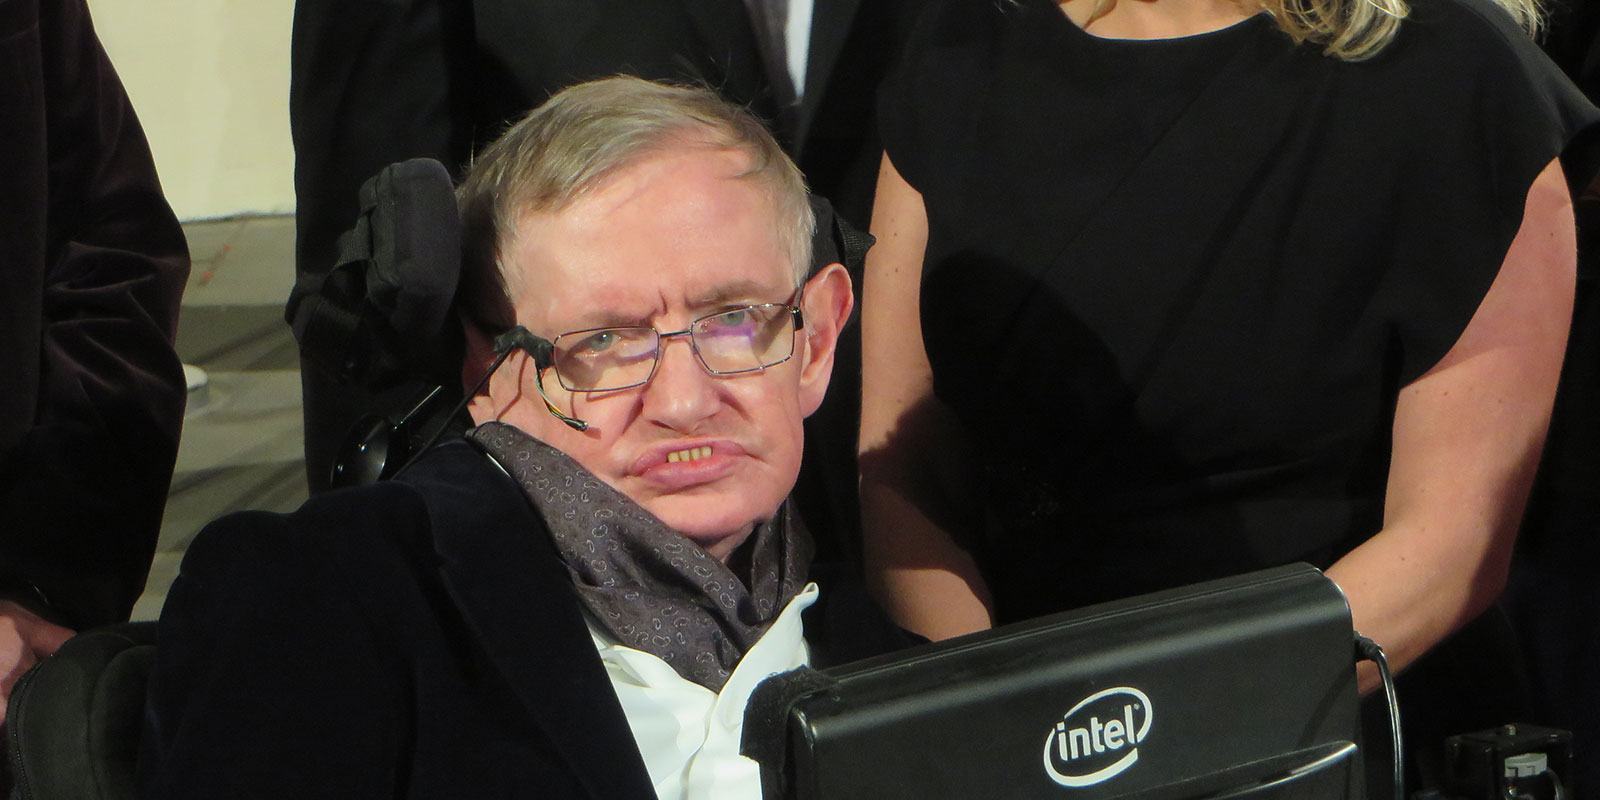 Prof Stephen Hawking in 2015